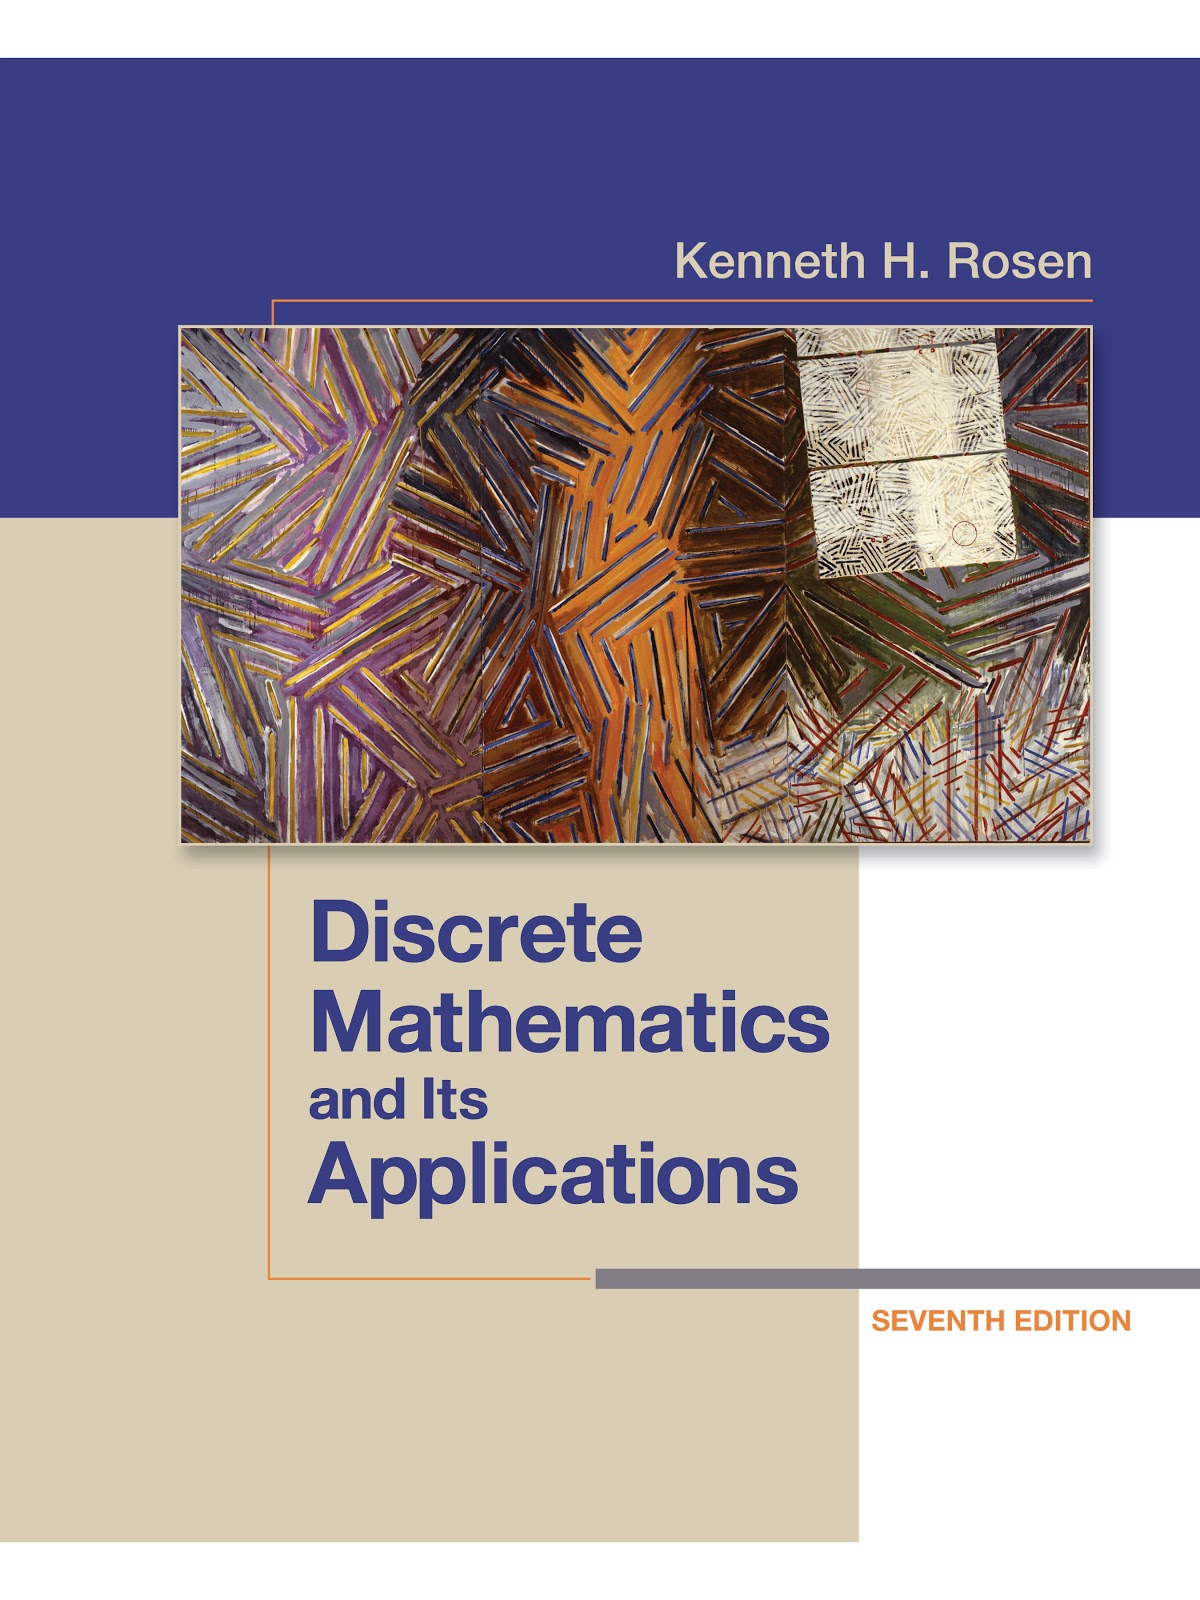 Discrete Mathematics and Its Applications (7th Edition) - Kenneth H. Rosen